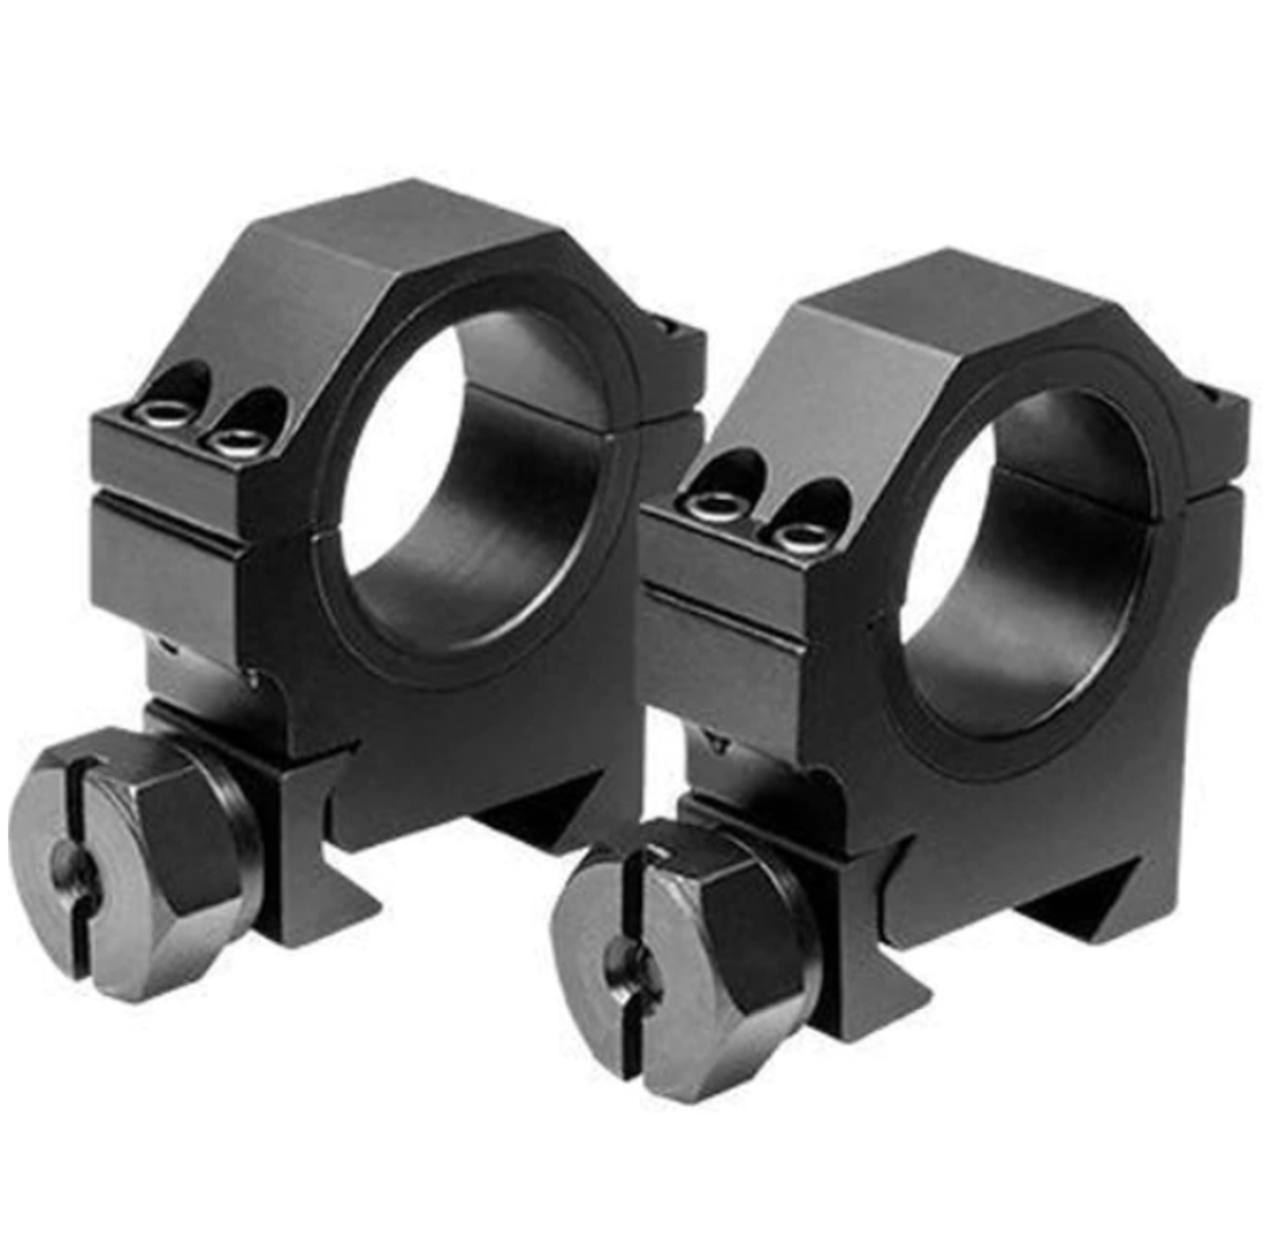 Airsoft Mounts & Accessories for Rifles, AEGs